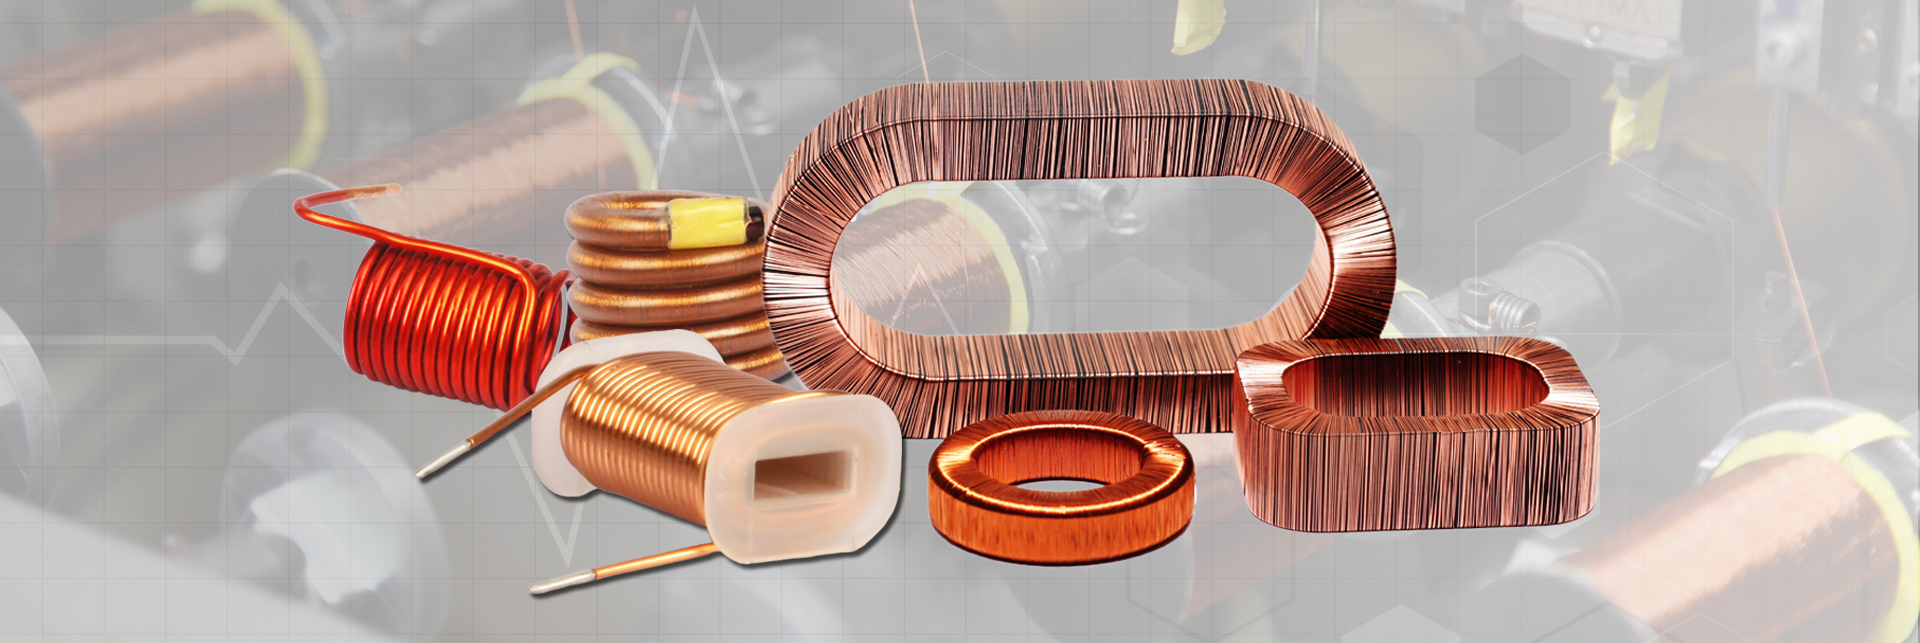 Gt Electronic India Coils Of Copper Wire Are Commonly Used In Electrical Inductors